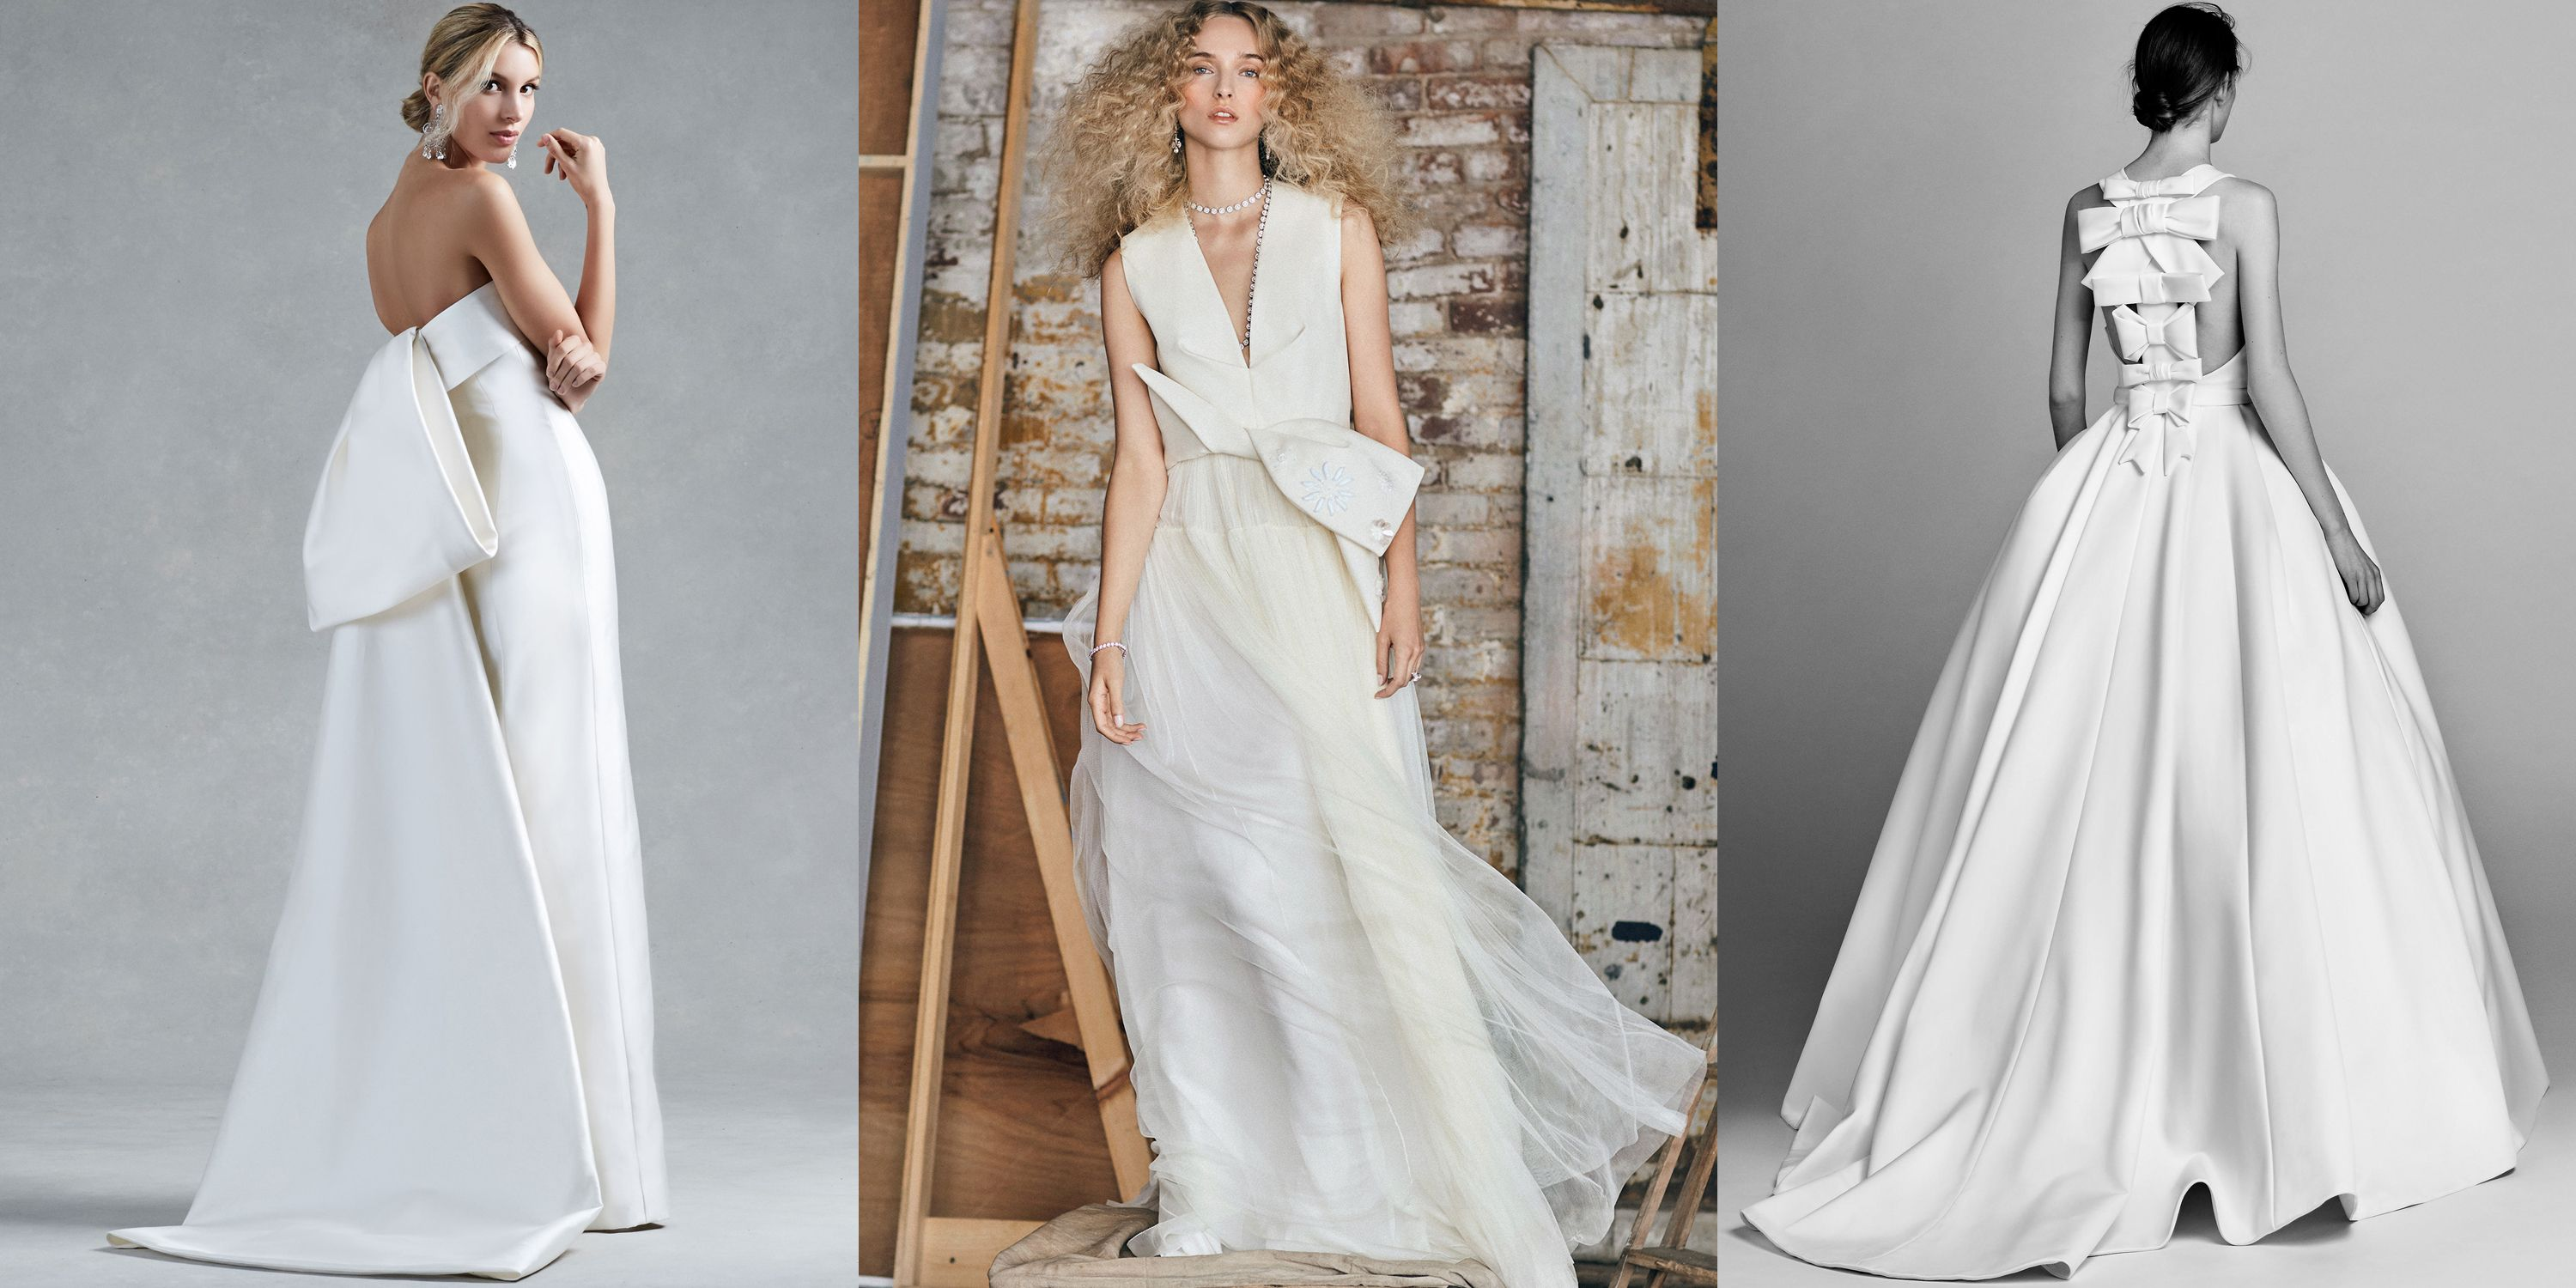 "<p>Bows for brides...groundbreaking. While this may seem like the most bare-bones idea for bridal, this season bows took on new forms–from oversized and abundant to architecturally draped and folded. No longer simply used to cinch your waist (and we'd typically discourage you from wearing add-on sashes that feel more like afterthoughts than part of the dress' design), these ties, knots, obis and twists adorned and embellished gowns of all shapes and styles. <em data-redactor-tag=""em"" data-verified=""redactor"">From left: Oscar de la Renta, Moda Operandi x Delpozo and Viktor and Rolf Fall 2017 Bridal.</em></p>"